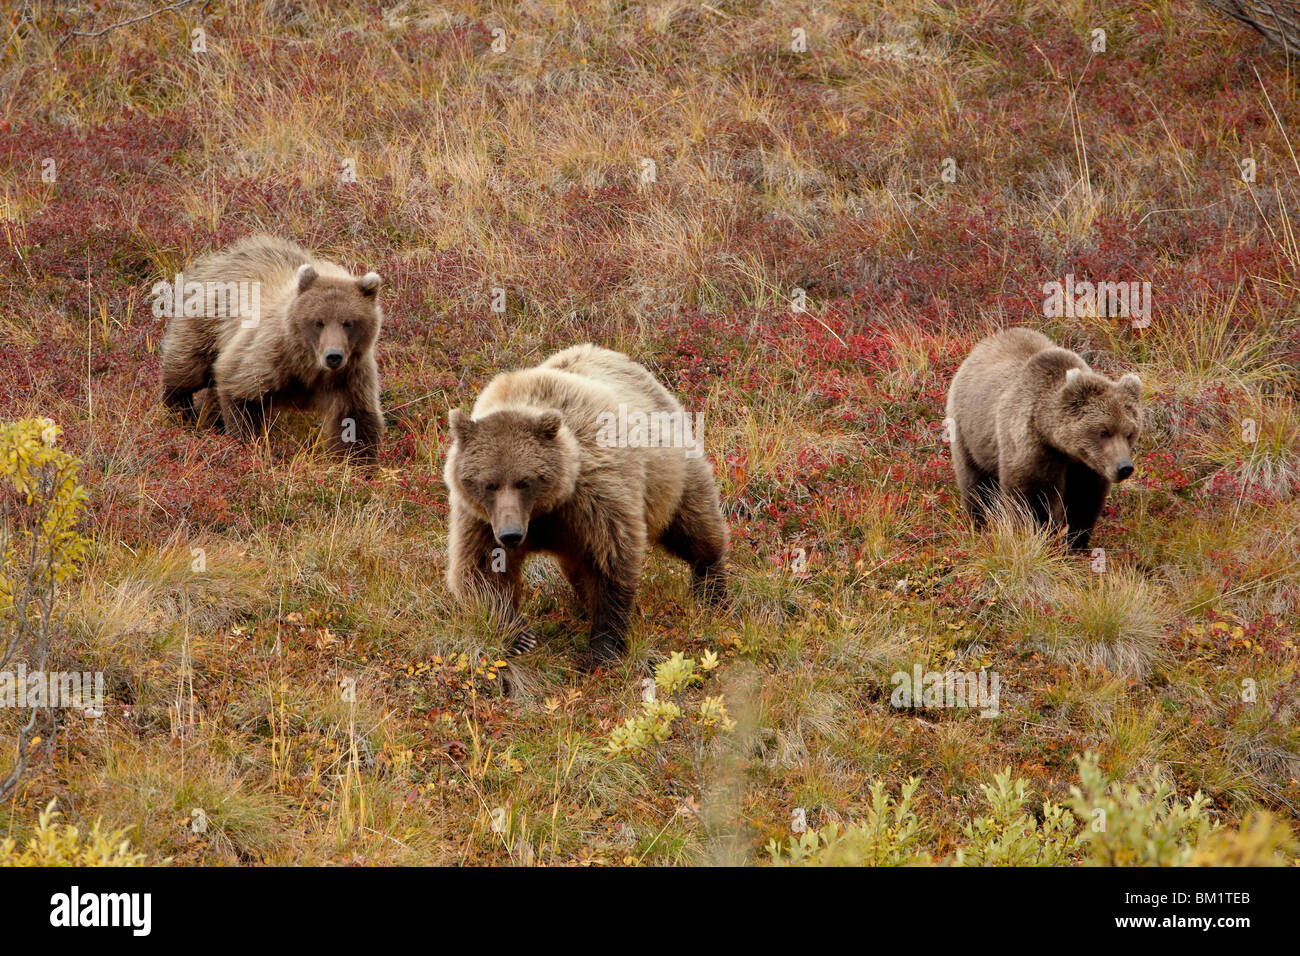 Grizzly bear (Ursus arctos horribilis) with two yearling cubs, Denali National Park, Alaska, United States of America - Stock Image